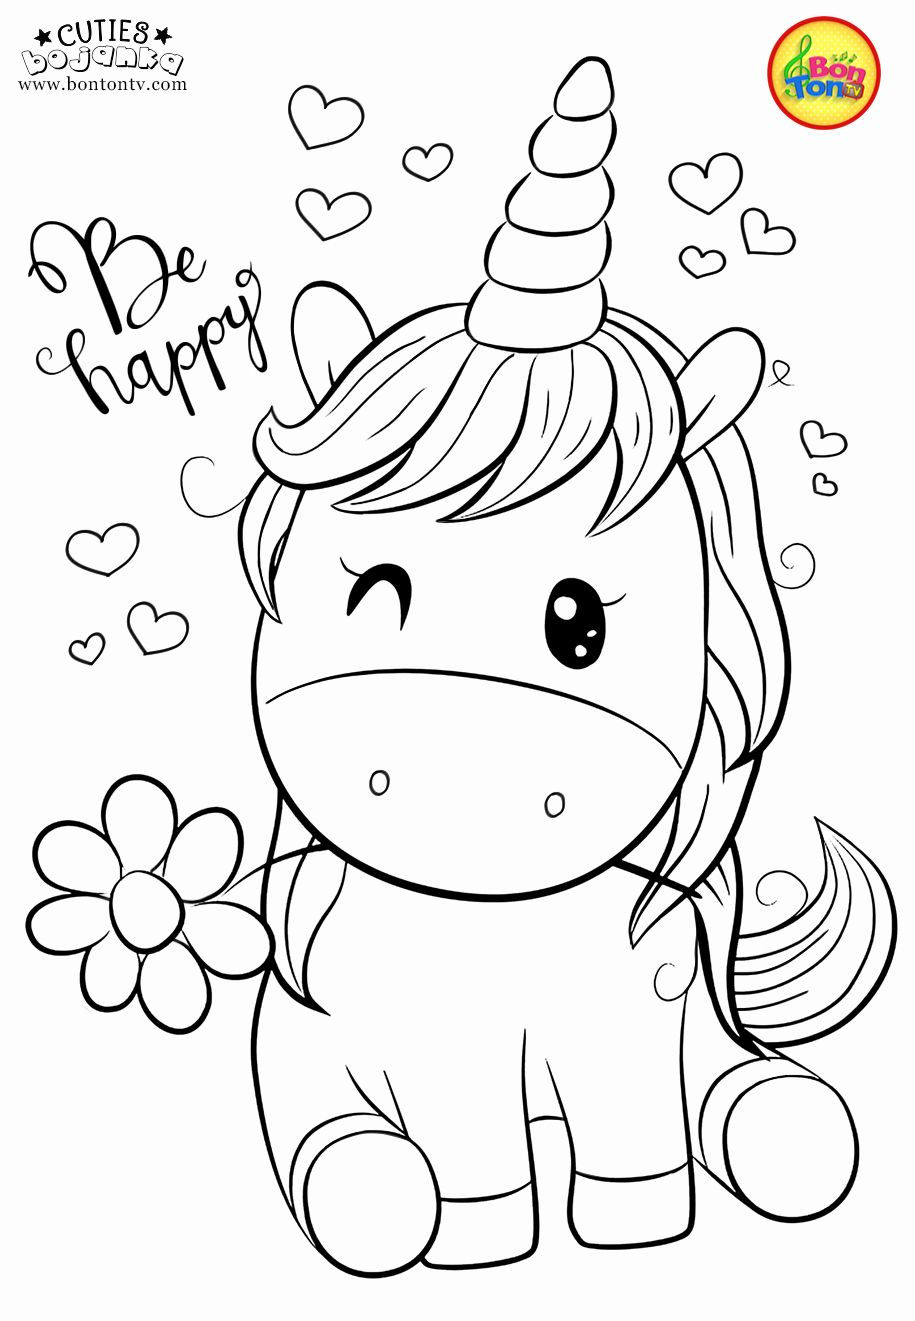 Baby Sloth Coloring Pages | Unicorn coloring pages, Cute ...